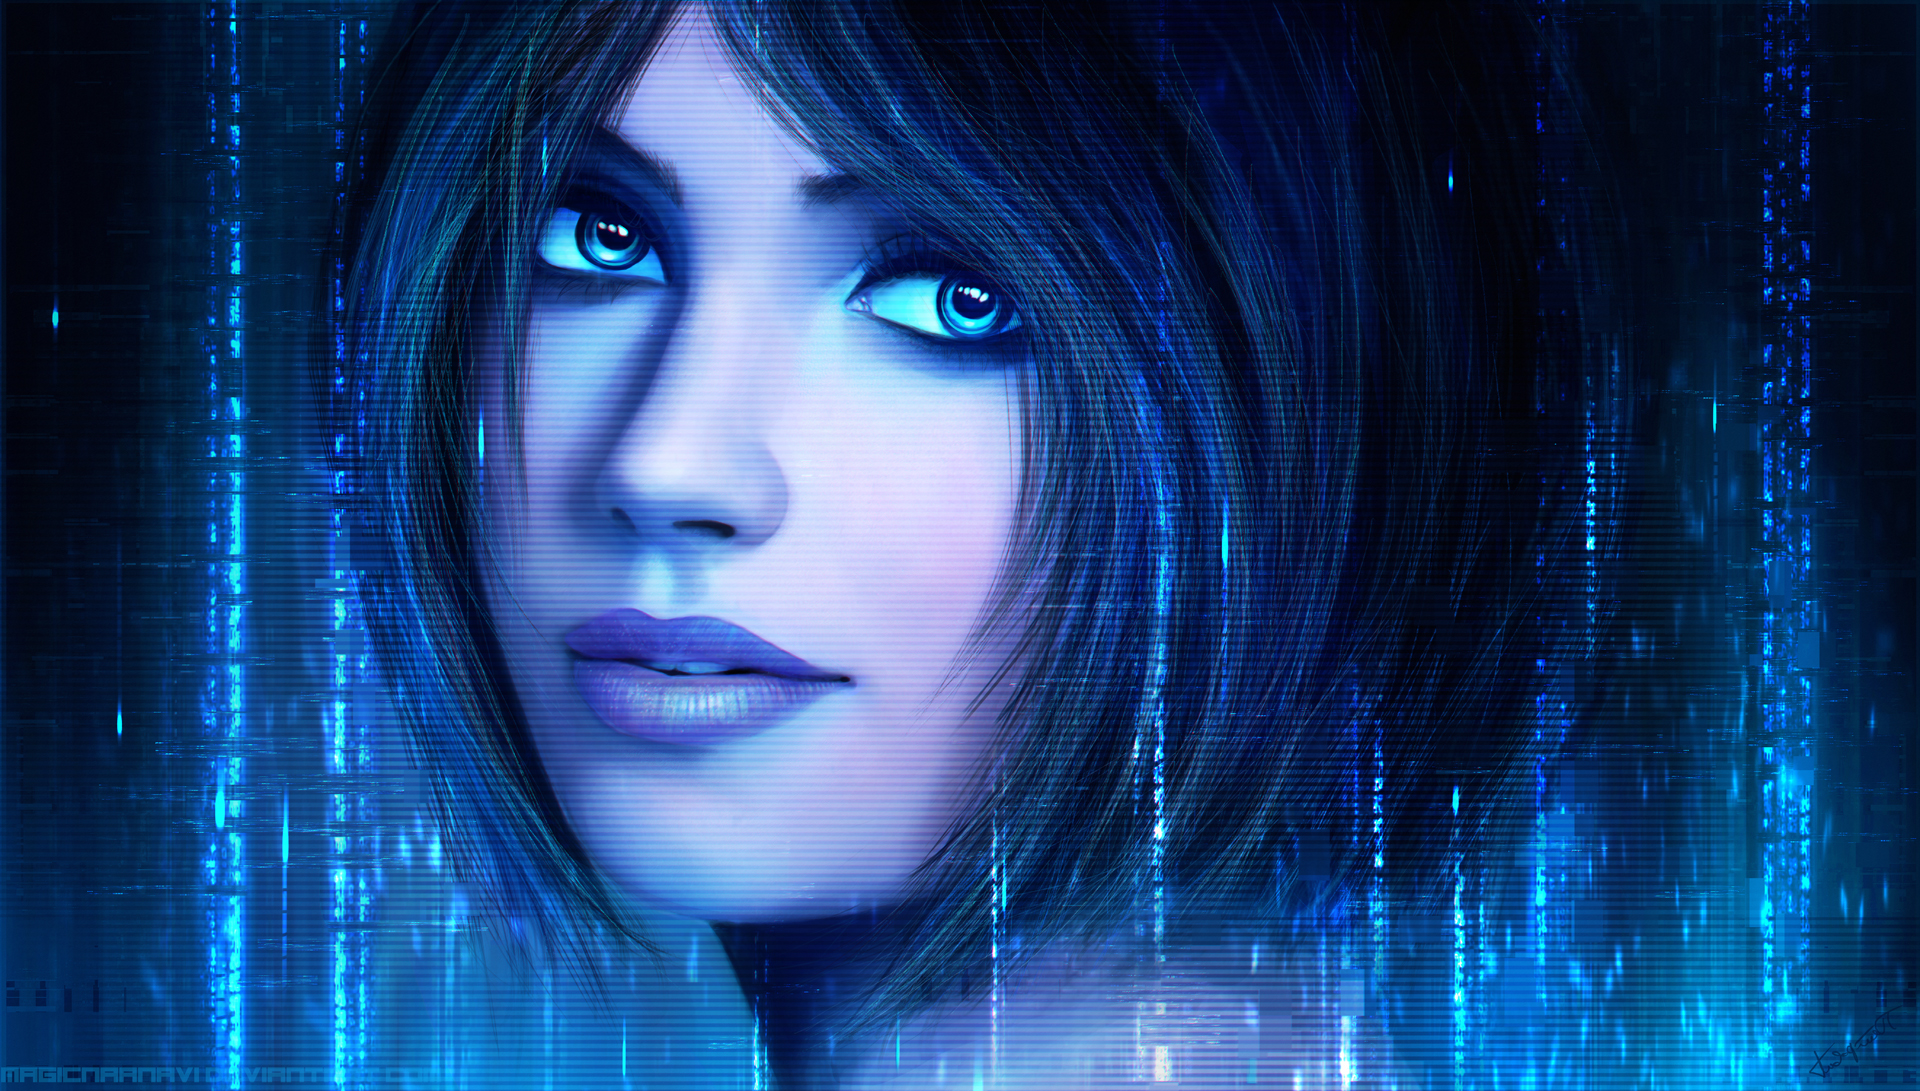 Cortana wallpaper nudes download